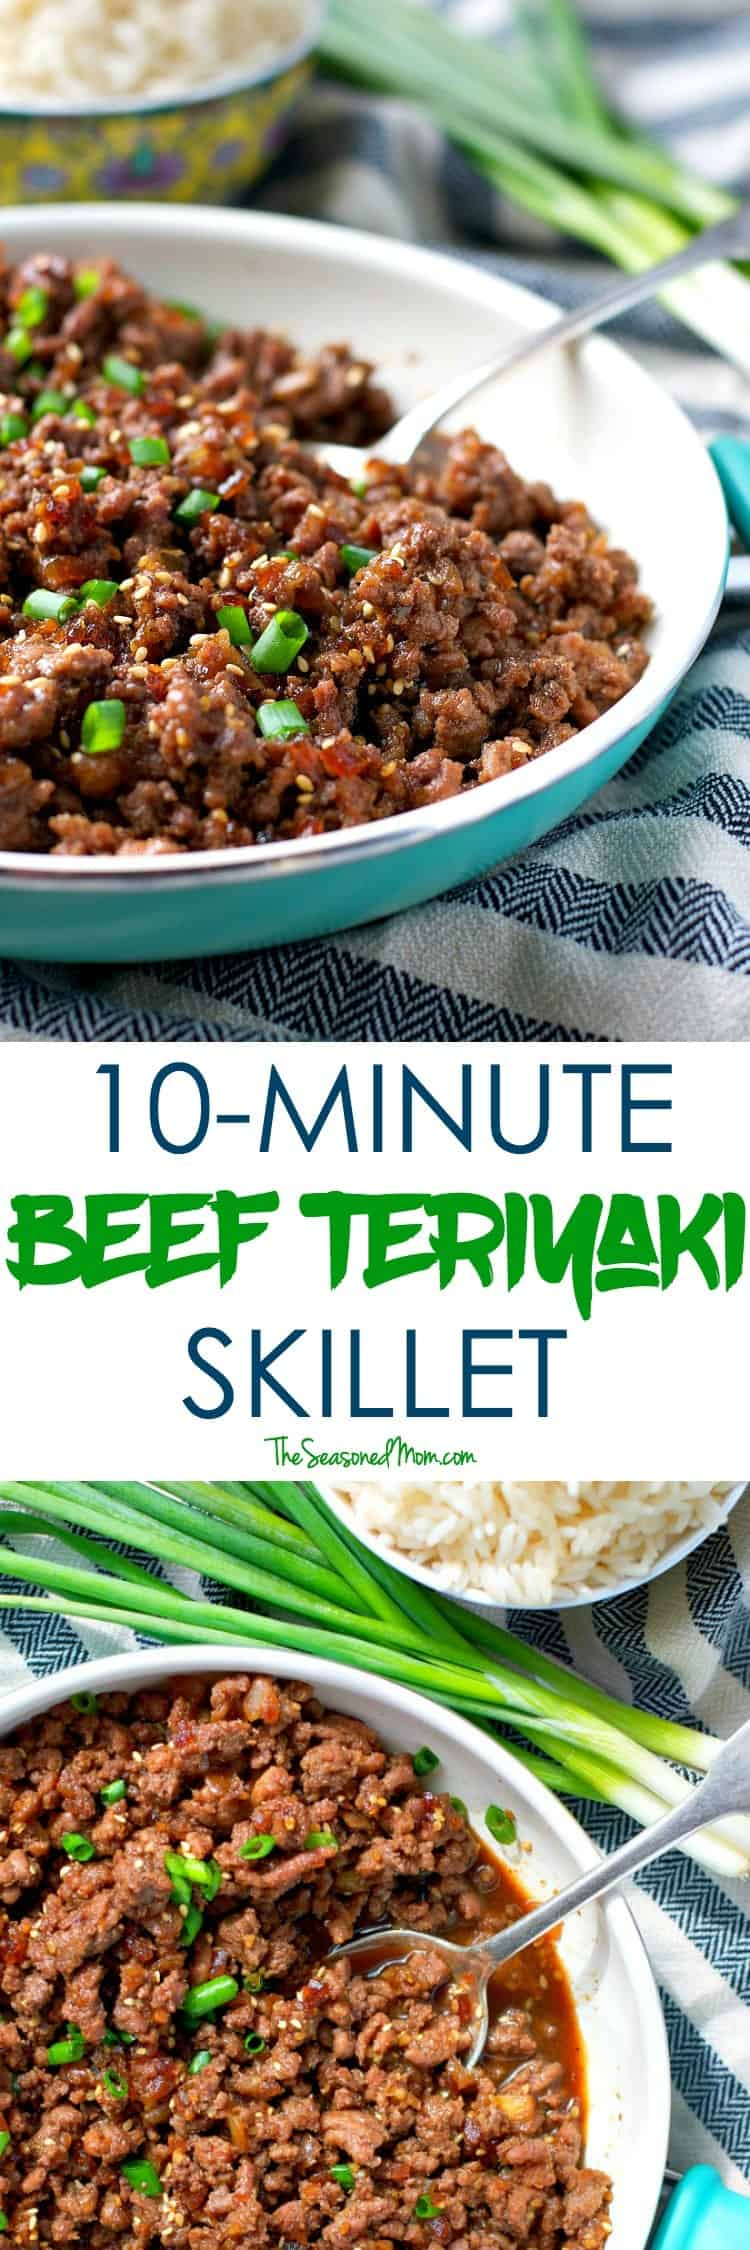 10 minute beef teriyaki skillet the seasoned mom you only need 5 ingredients and about 10 minutes to pull together an easy beef teriyaki forumfinder Choice Image